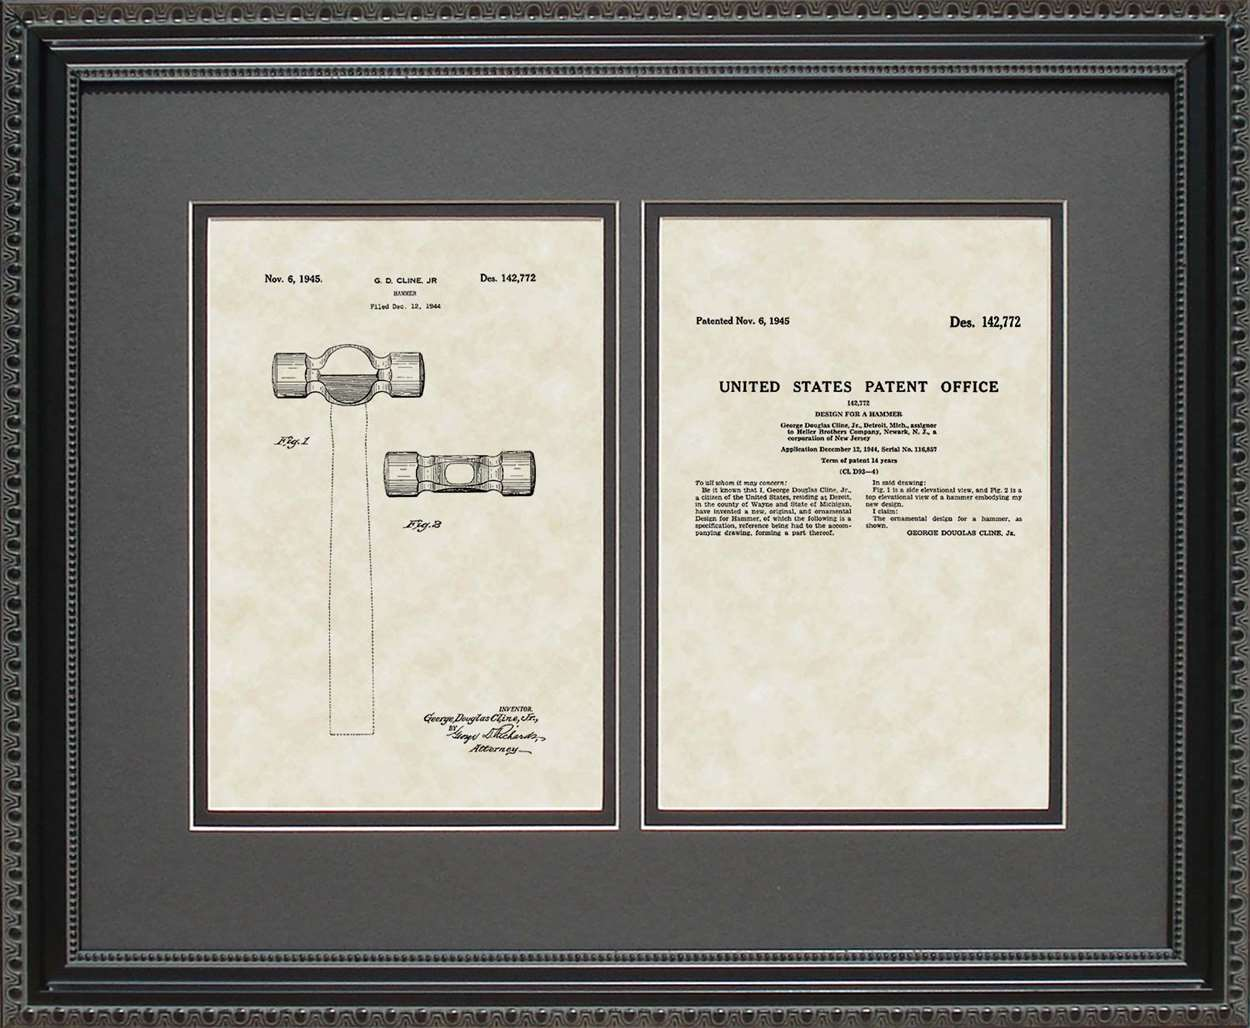 Farrier-Head Hammer Patent, Art & Copy, Cline, 1945, 16x20